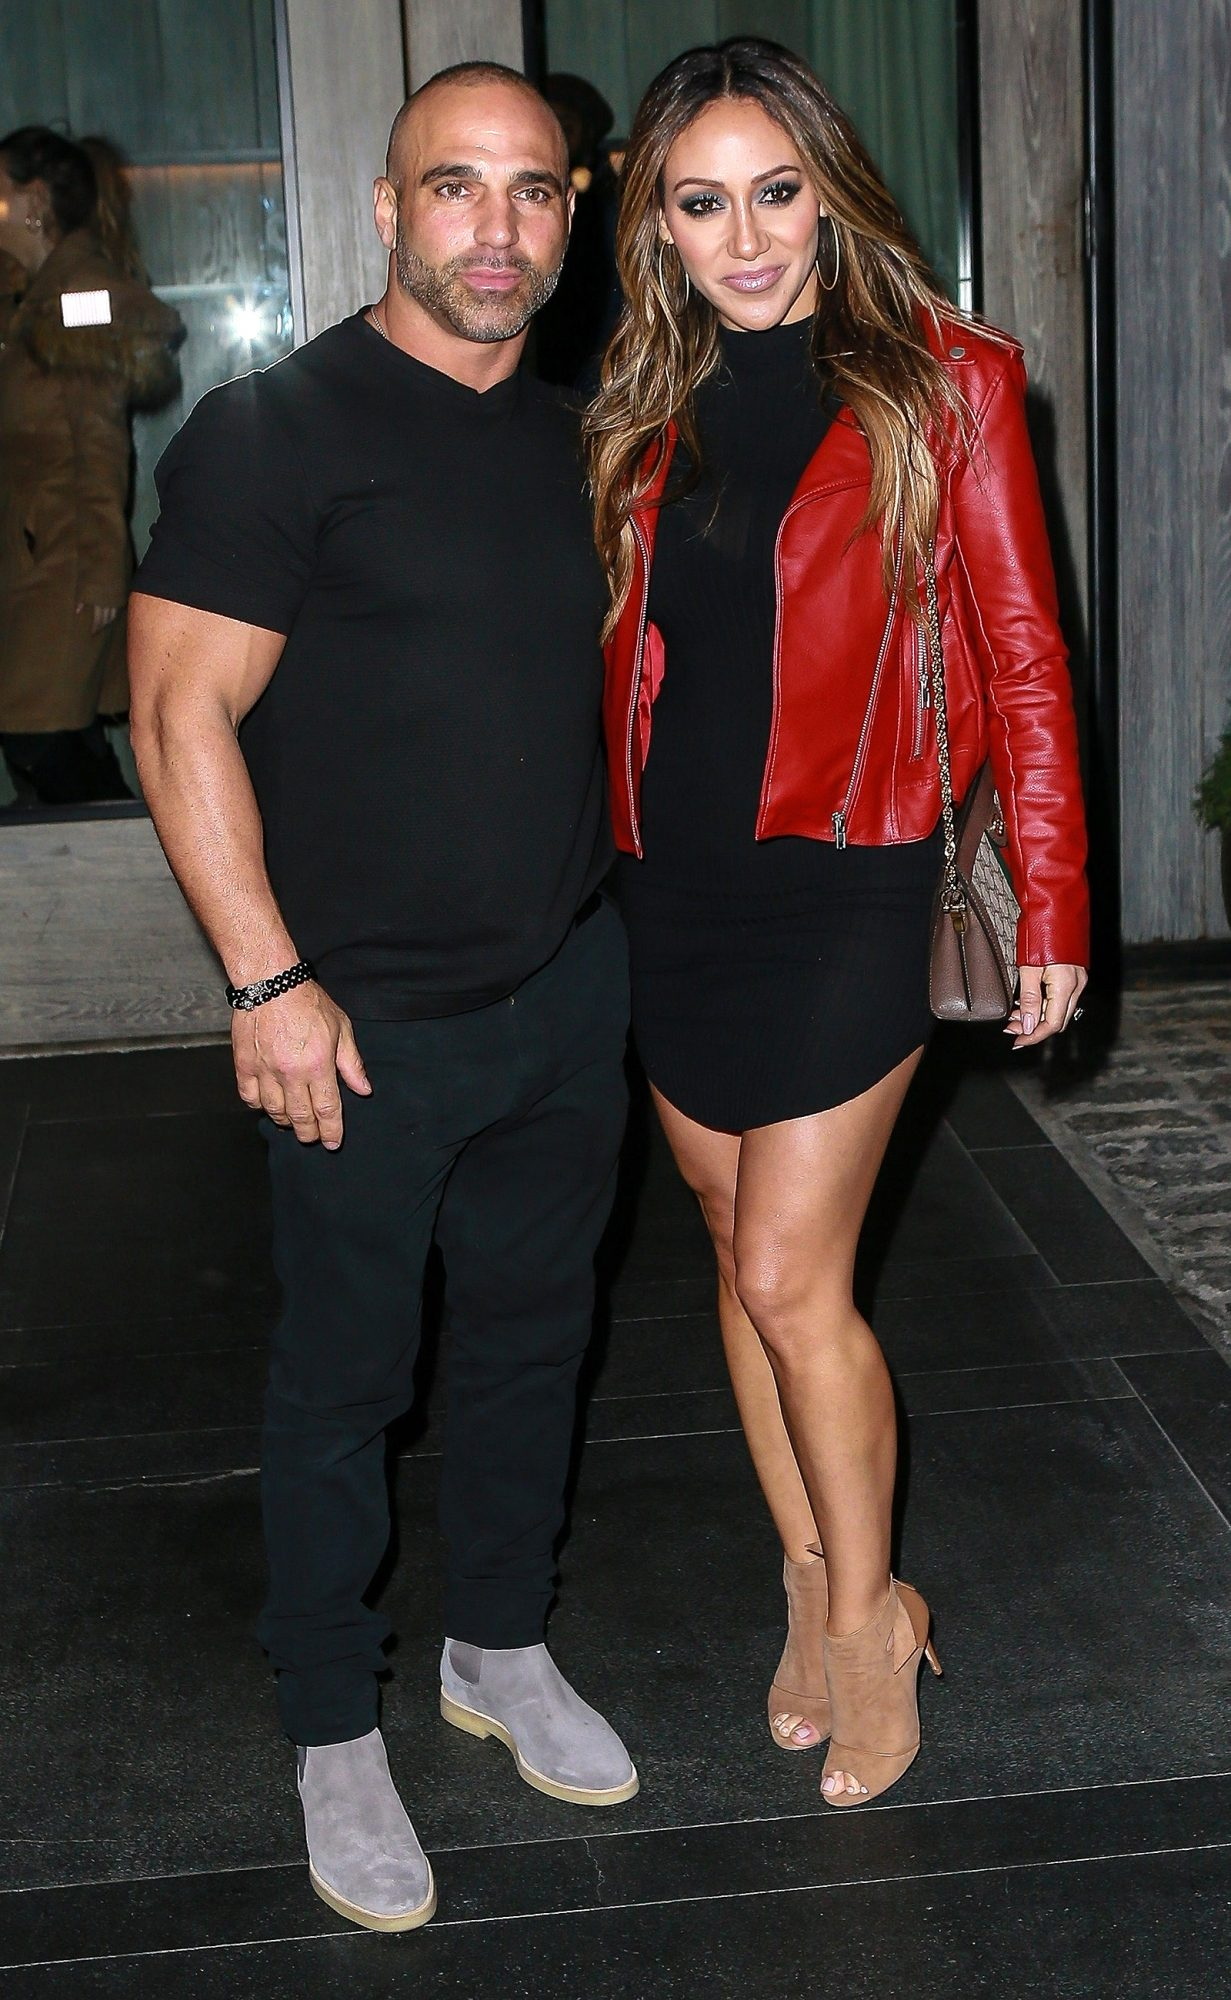 Teresa Giudice makes an appearance at Joe Gorga's Book release party